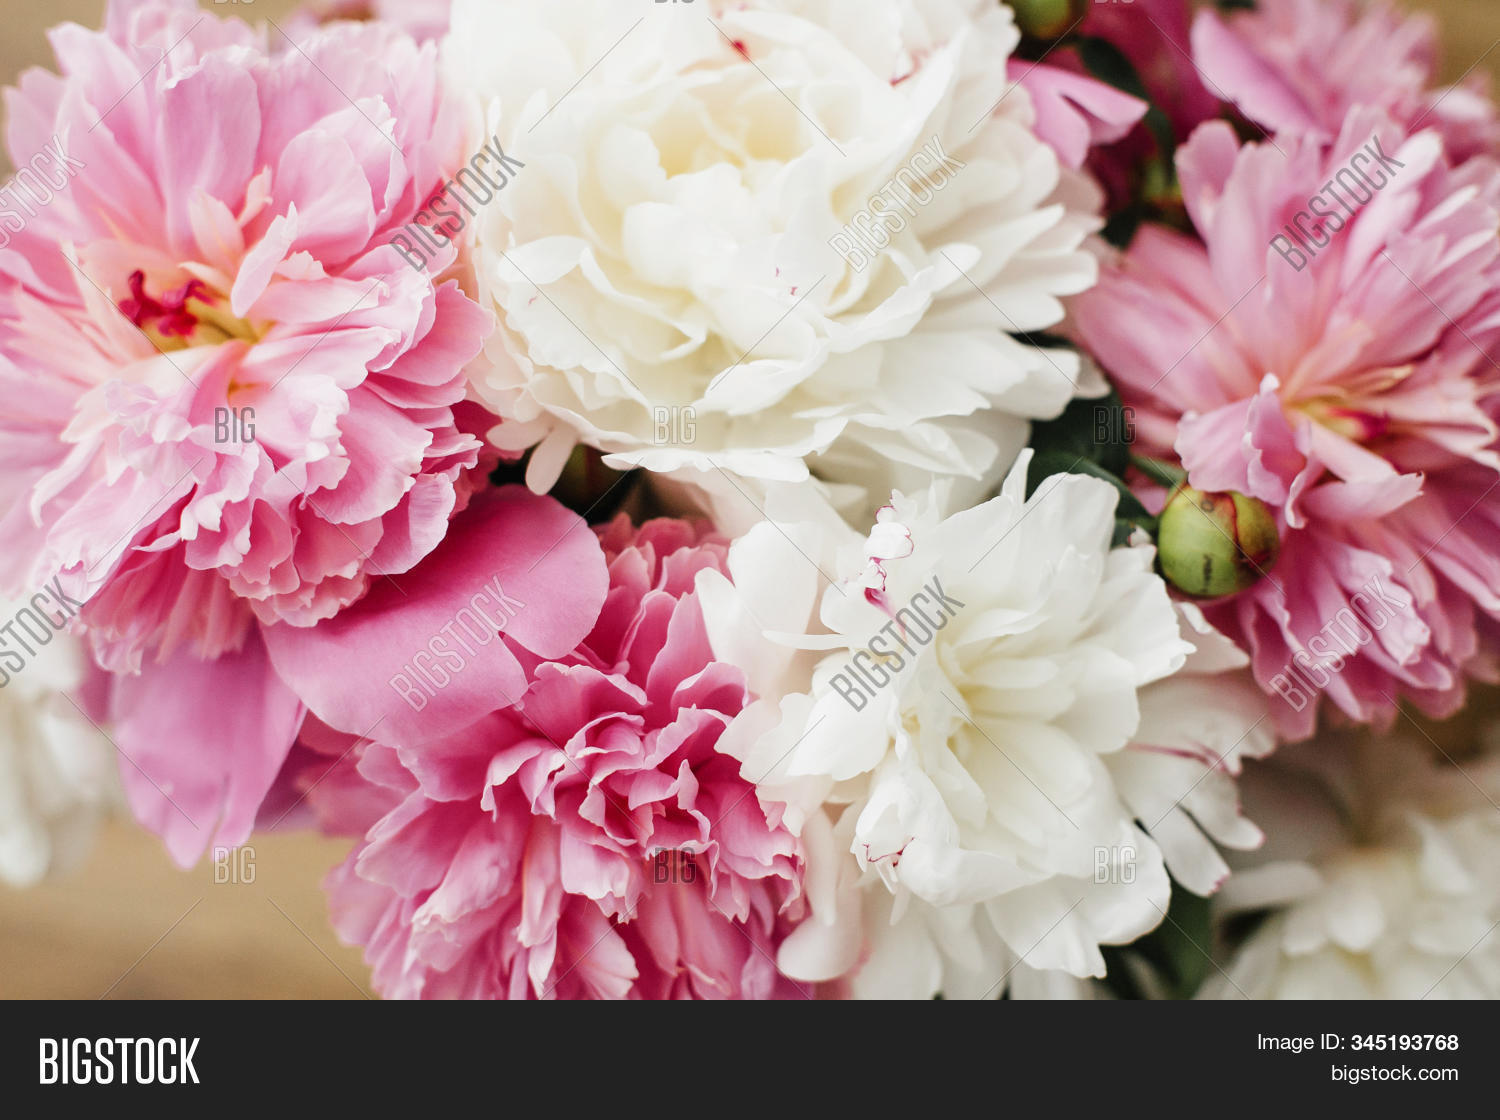 Happy Mothers Day Image Photo Free Trial Bigstock